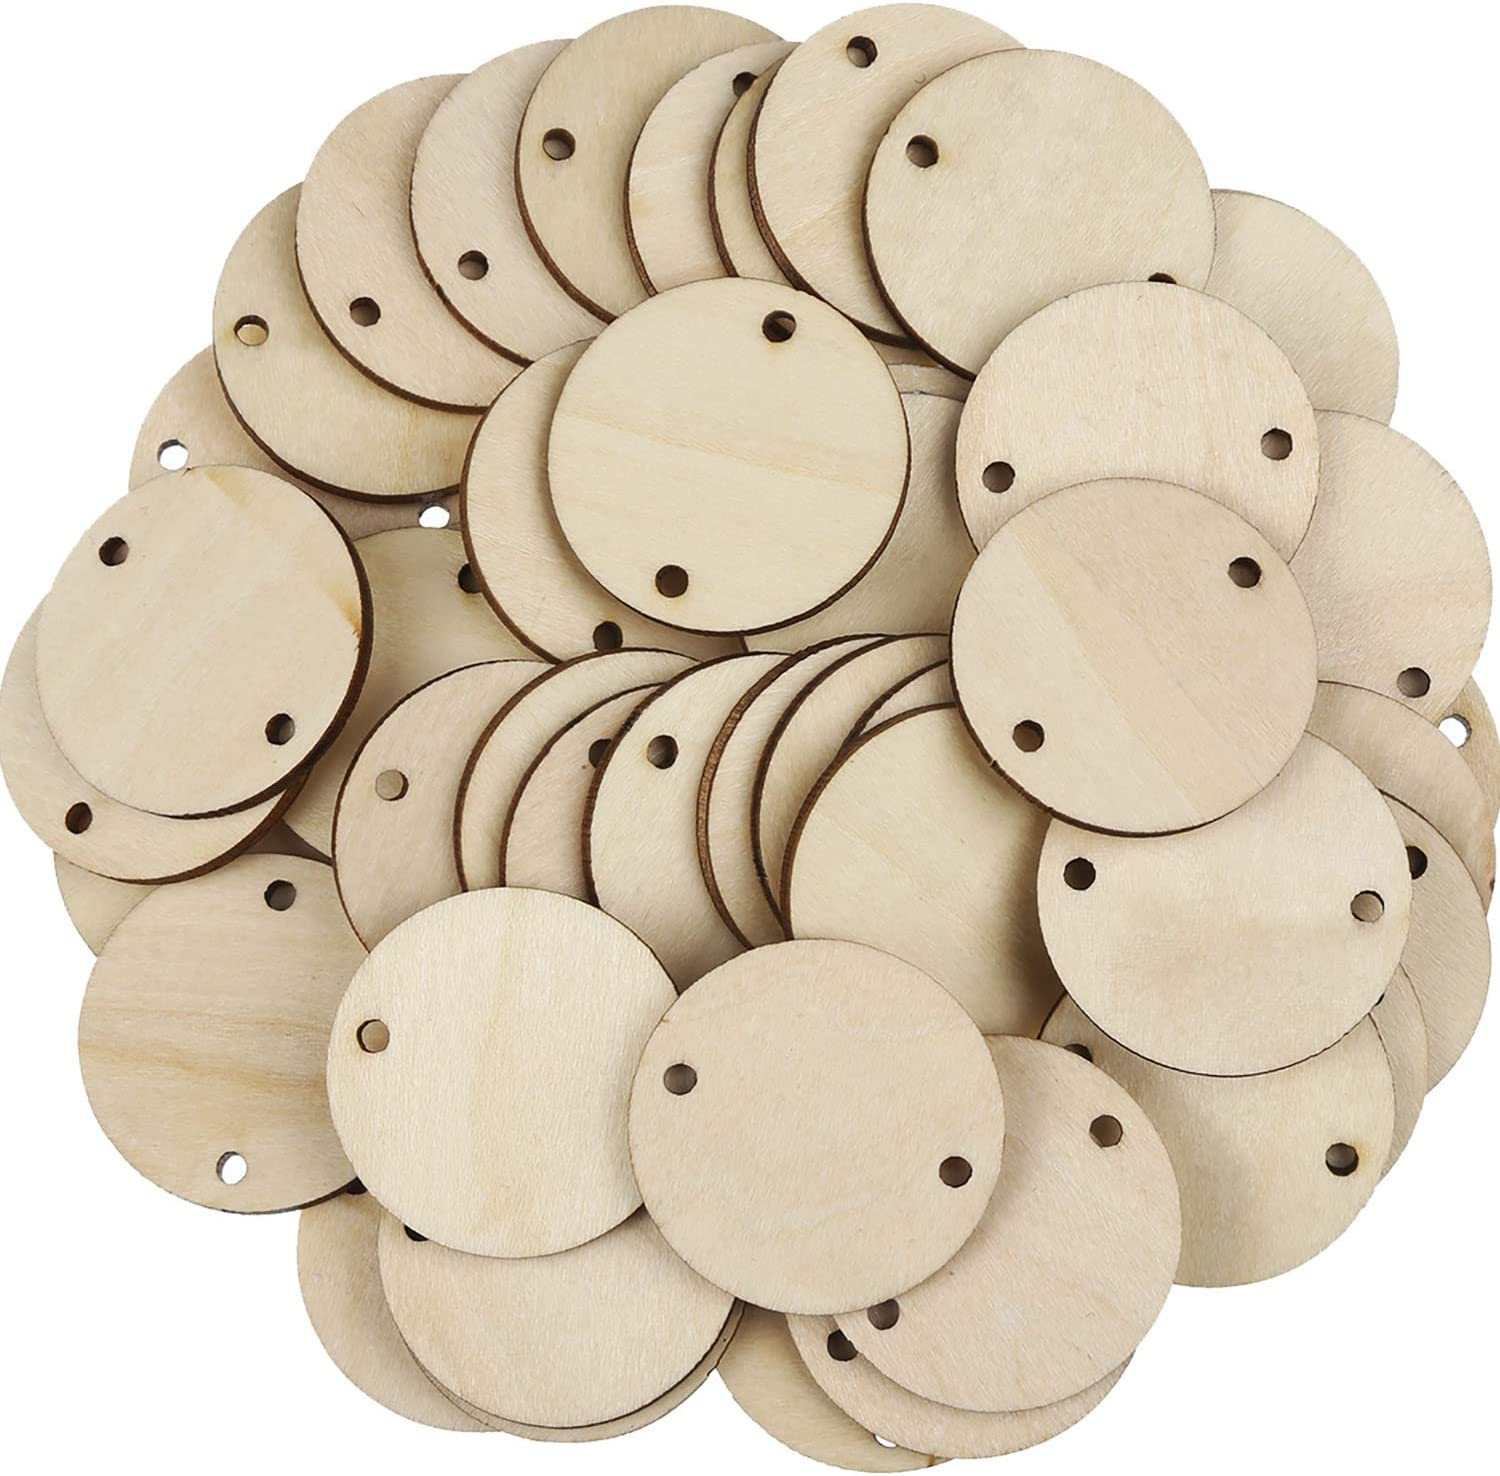 Bememo 100 Pieces Circle Wooden Tags Birthday Board Tags with 2 Holes for Birthday Board Chore Board DIY Crafts 1.5 Inches